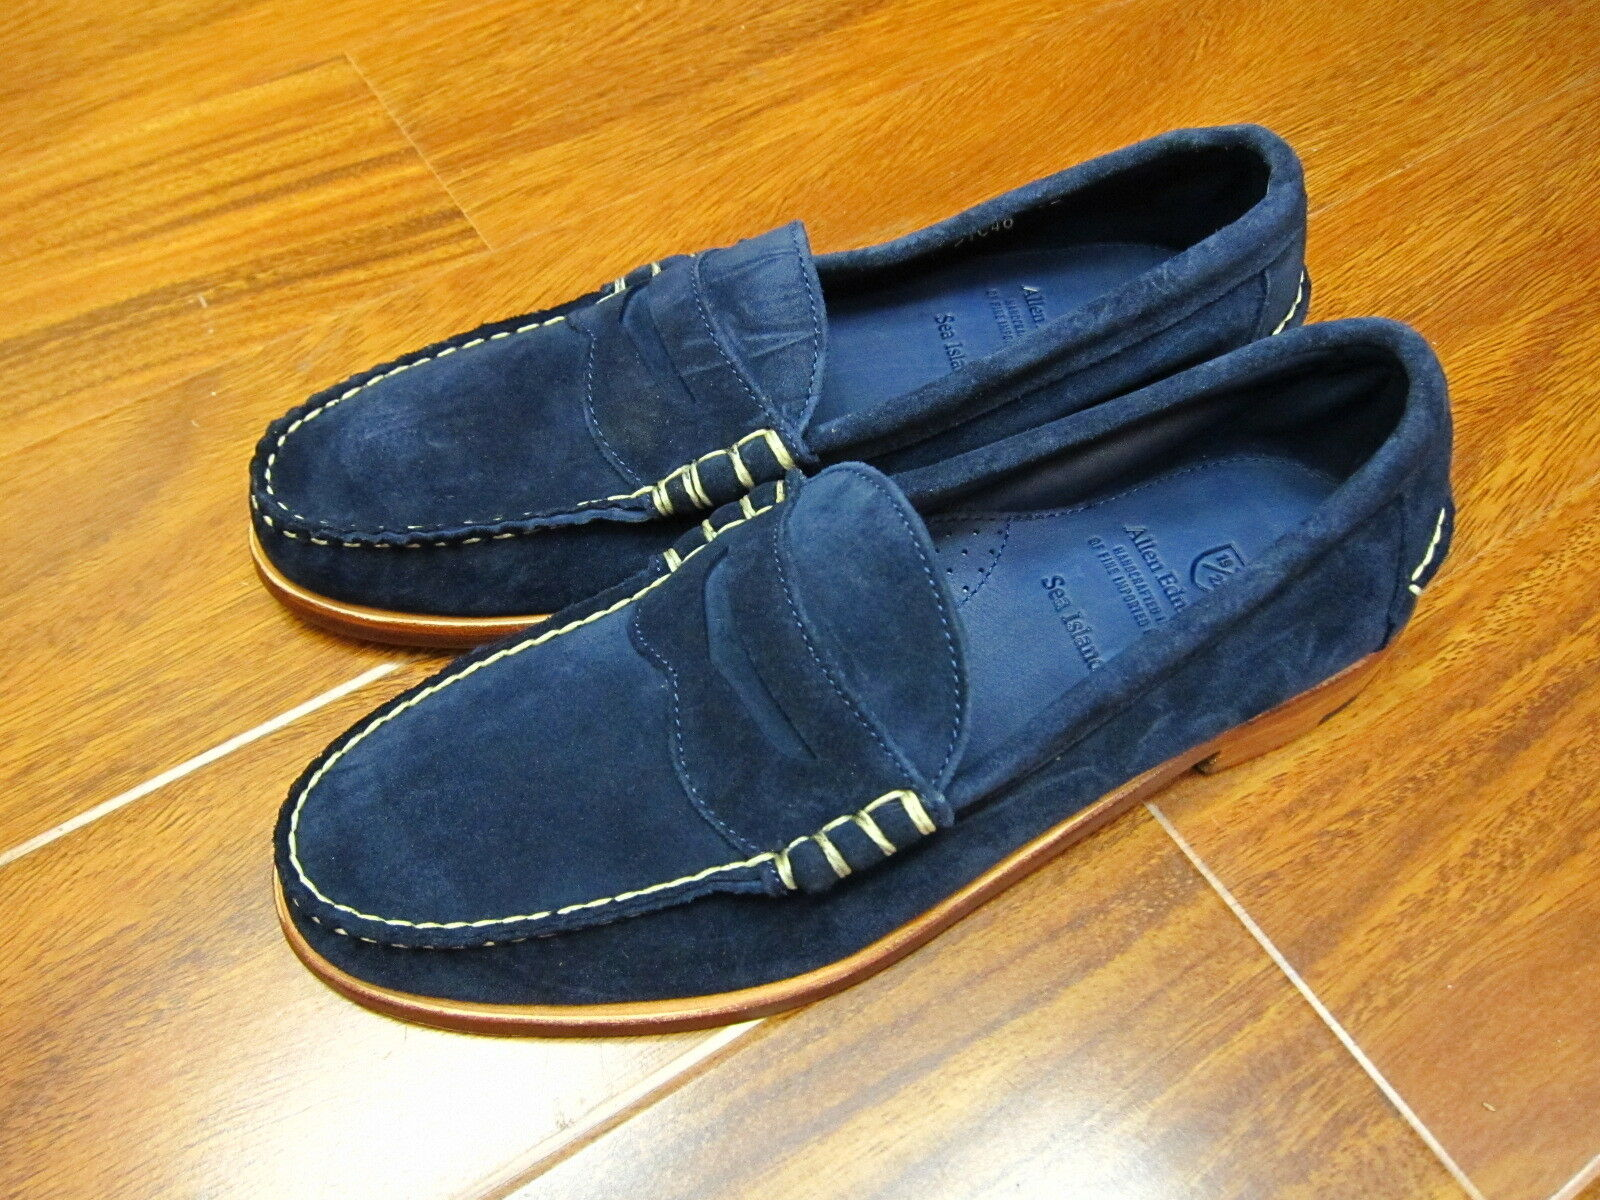 Allen Edmonds Sea Island Slip-on Loafer  69133 Navy Made in USA New with Box